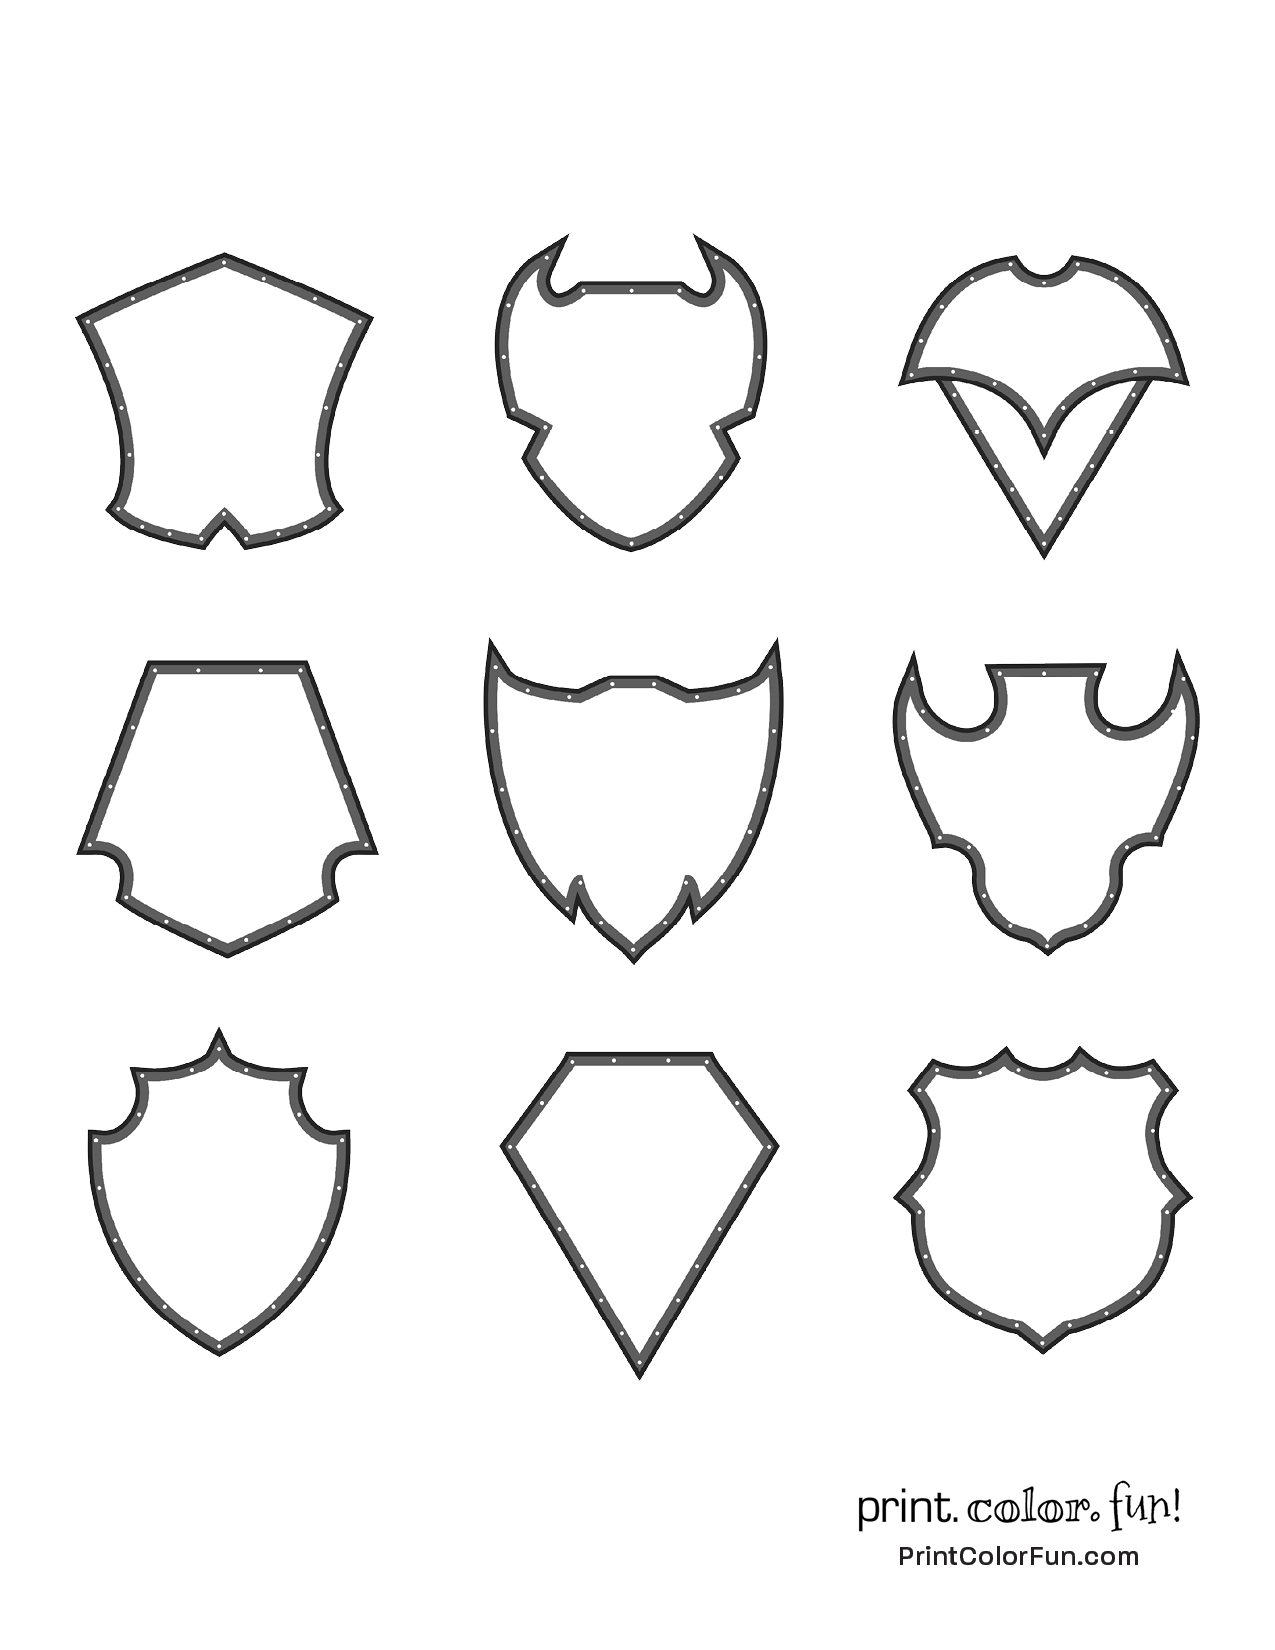 Set of medieval-style shields coloring page - Print. Color. Fun